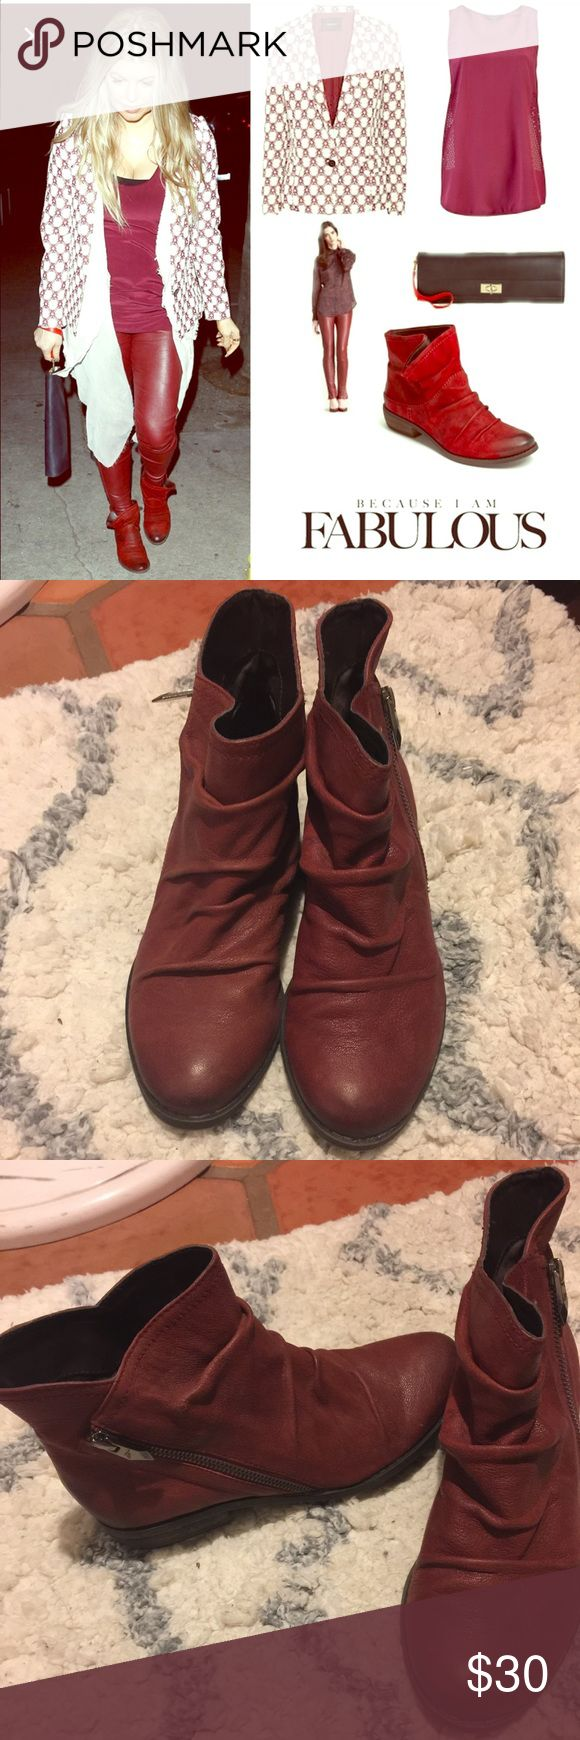 Fergie booties Fergie burgundy booties. Worn once. In great condition. Fergie Shoes Ankle Boots & Booties